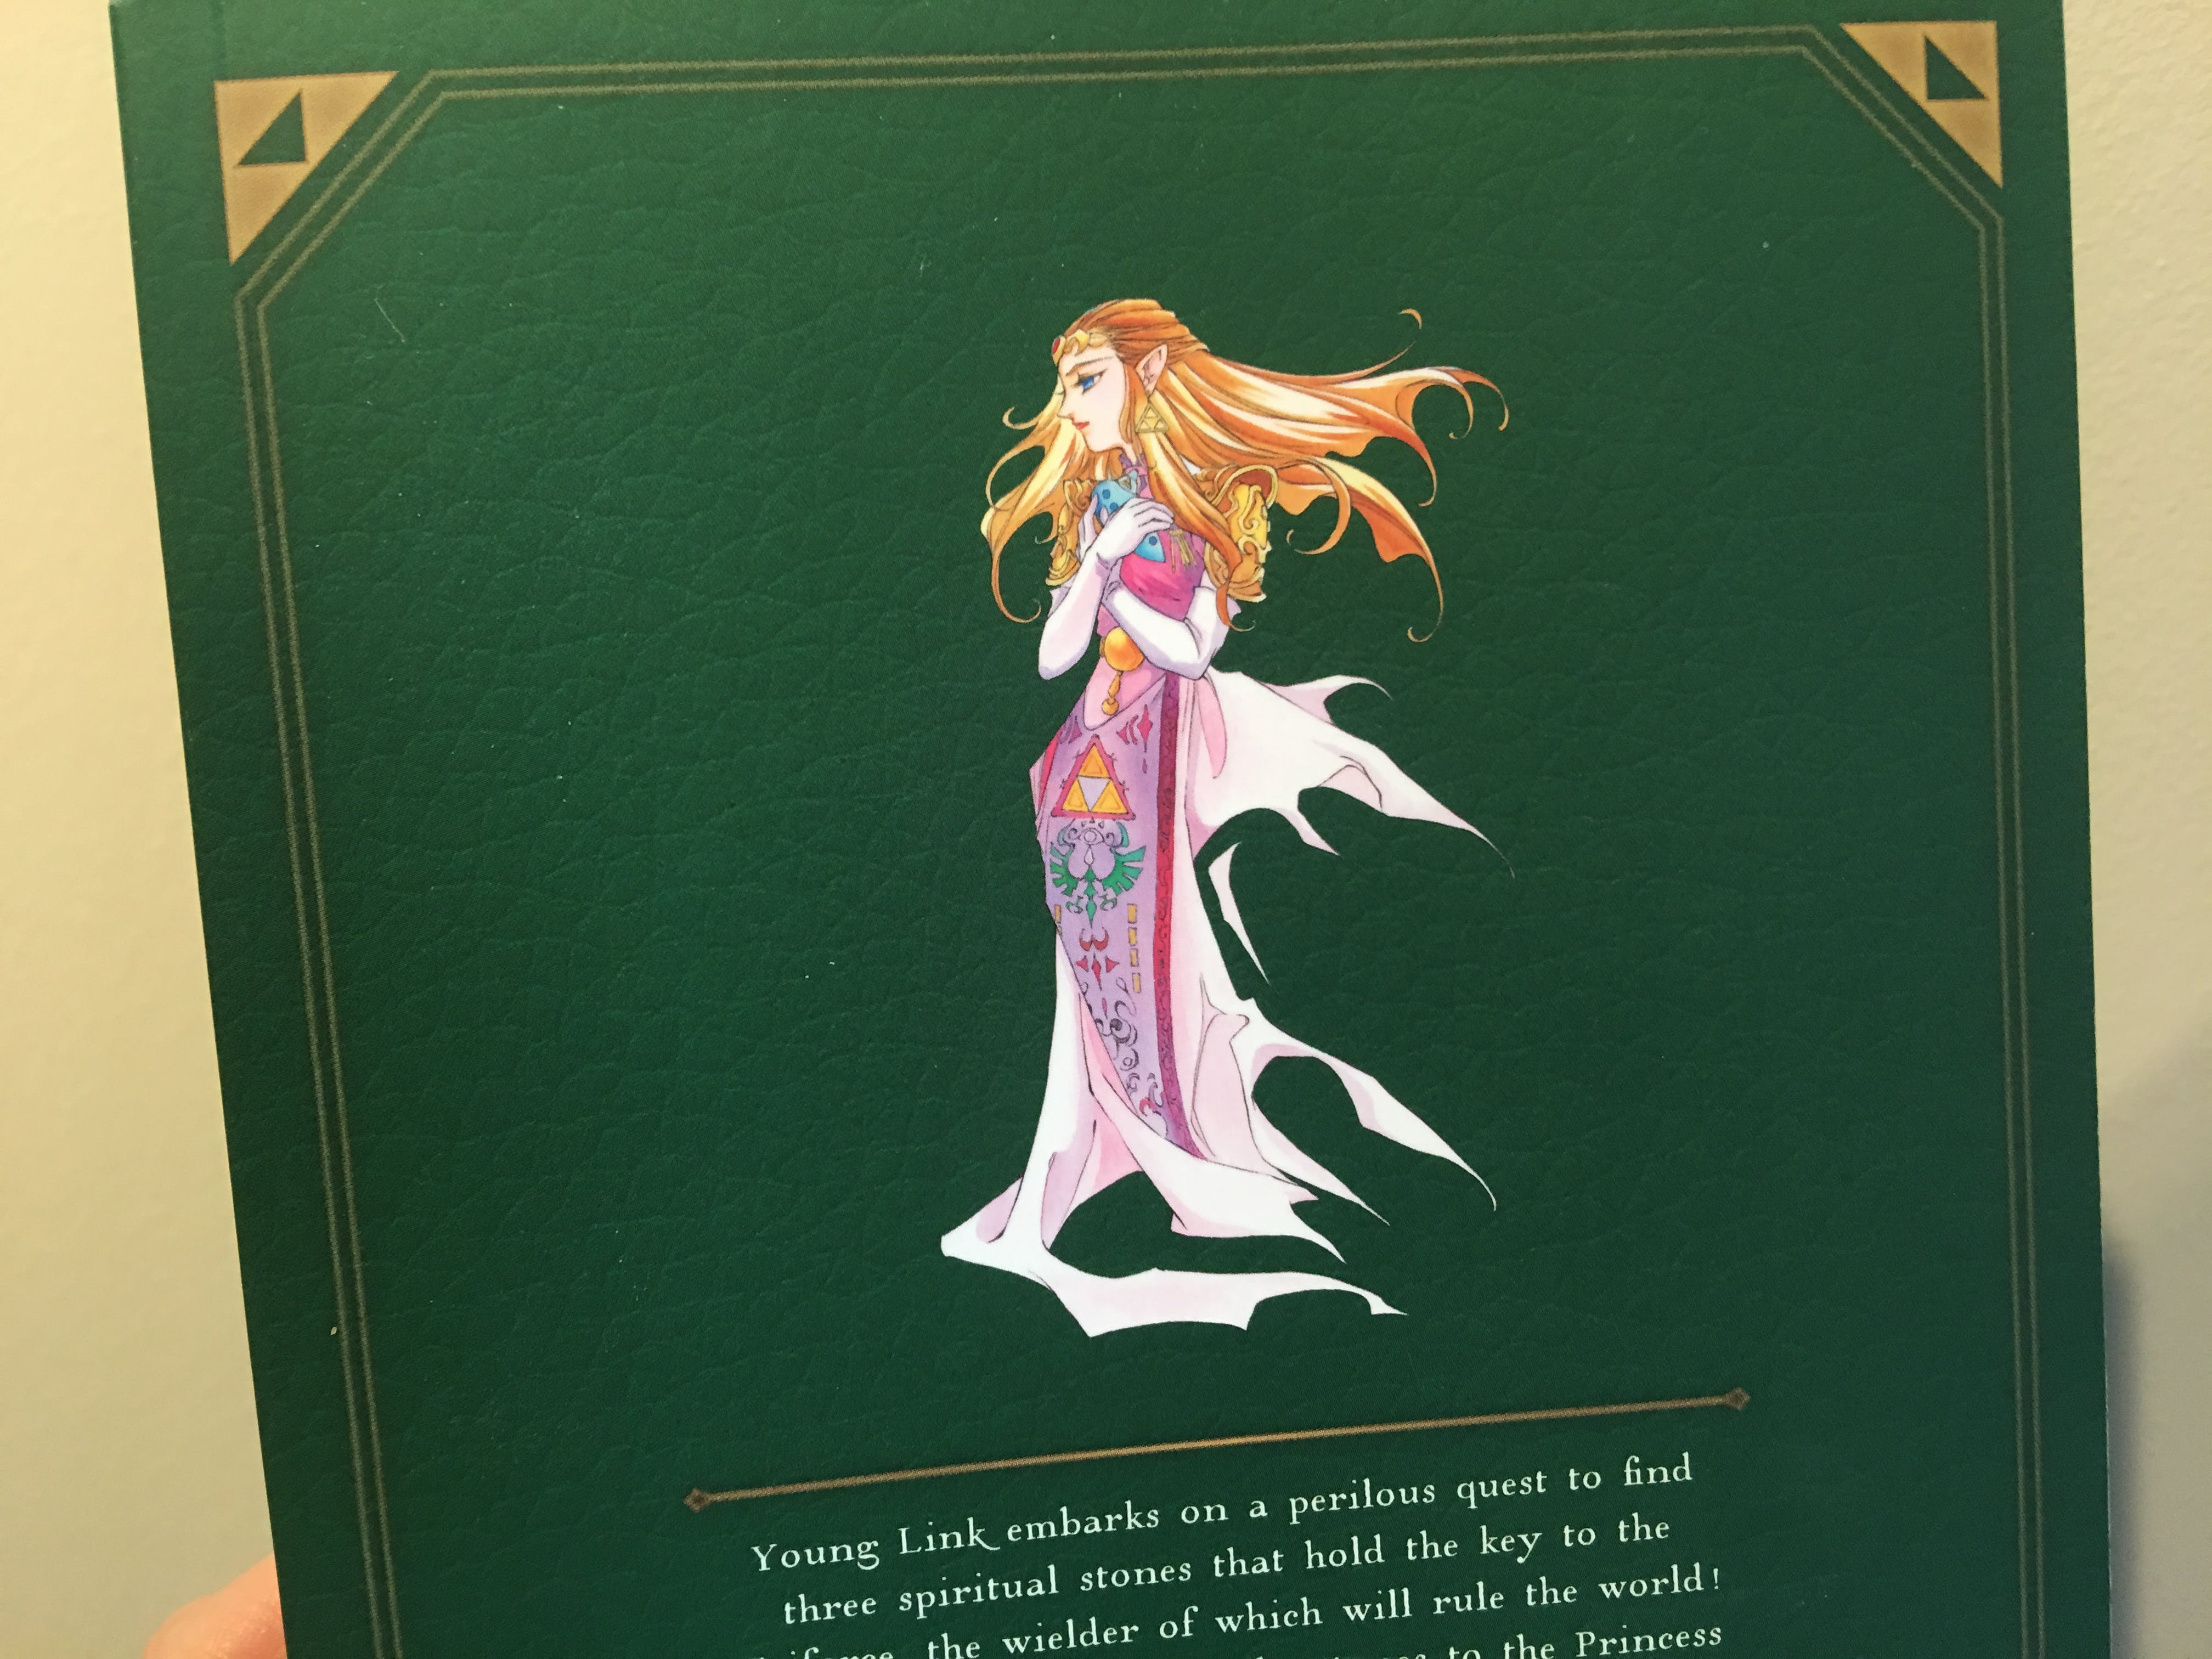 This lovely image of Zelda graces the back cover.